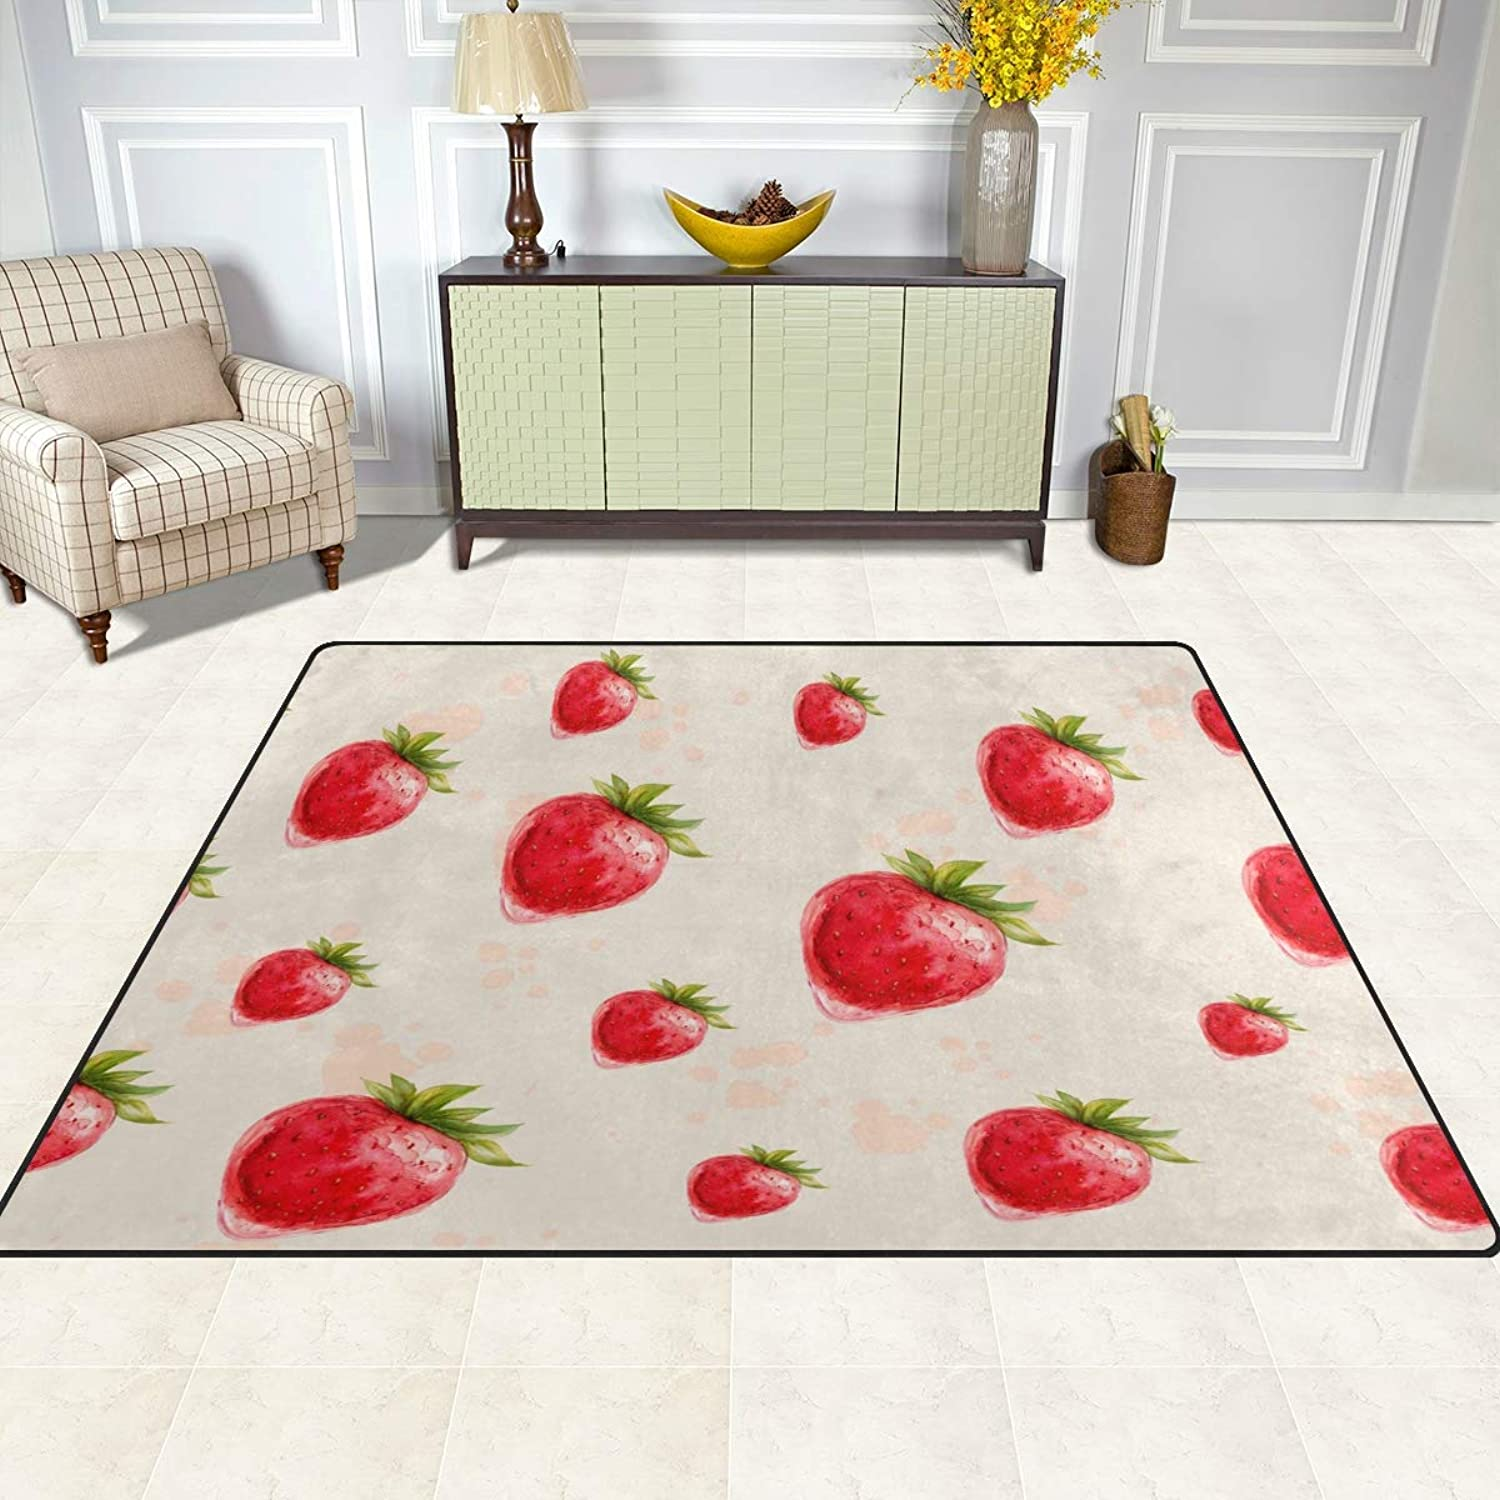 FAJRO Strawberry Rugs for entryway Doormat Area Rug Multipattern Door Mat shoes Scraper Home Dec Anti-Slip Indoor Outdoor